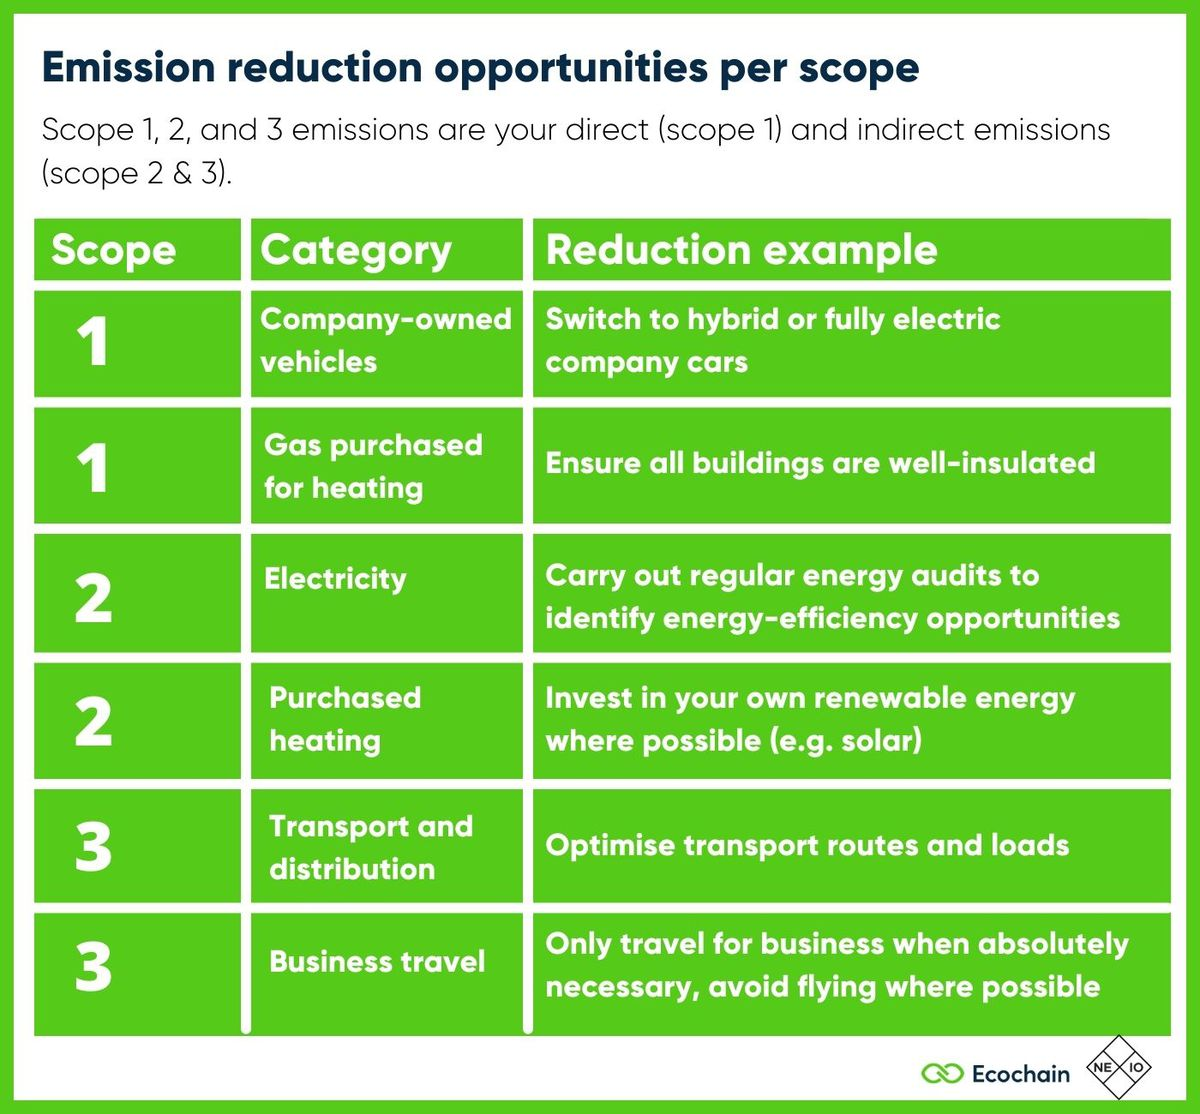 Examples of emission reduction opportunities for businesses- per scope 1, 2, and 3 emissions.